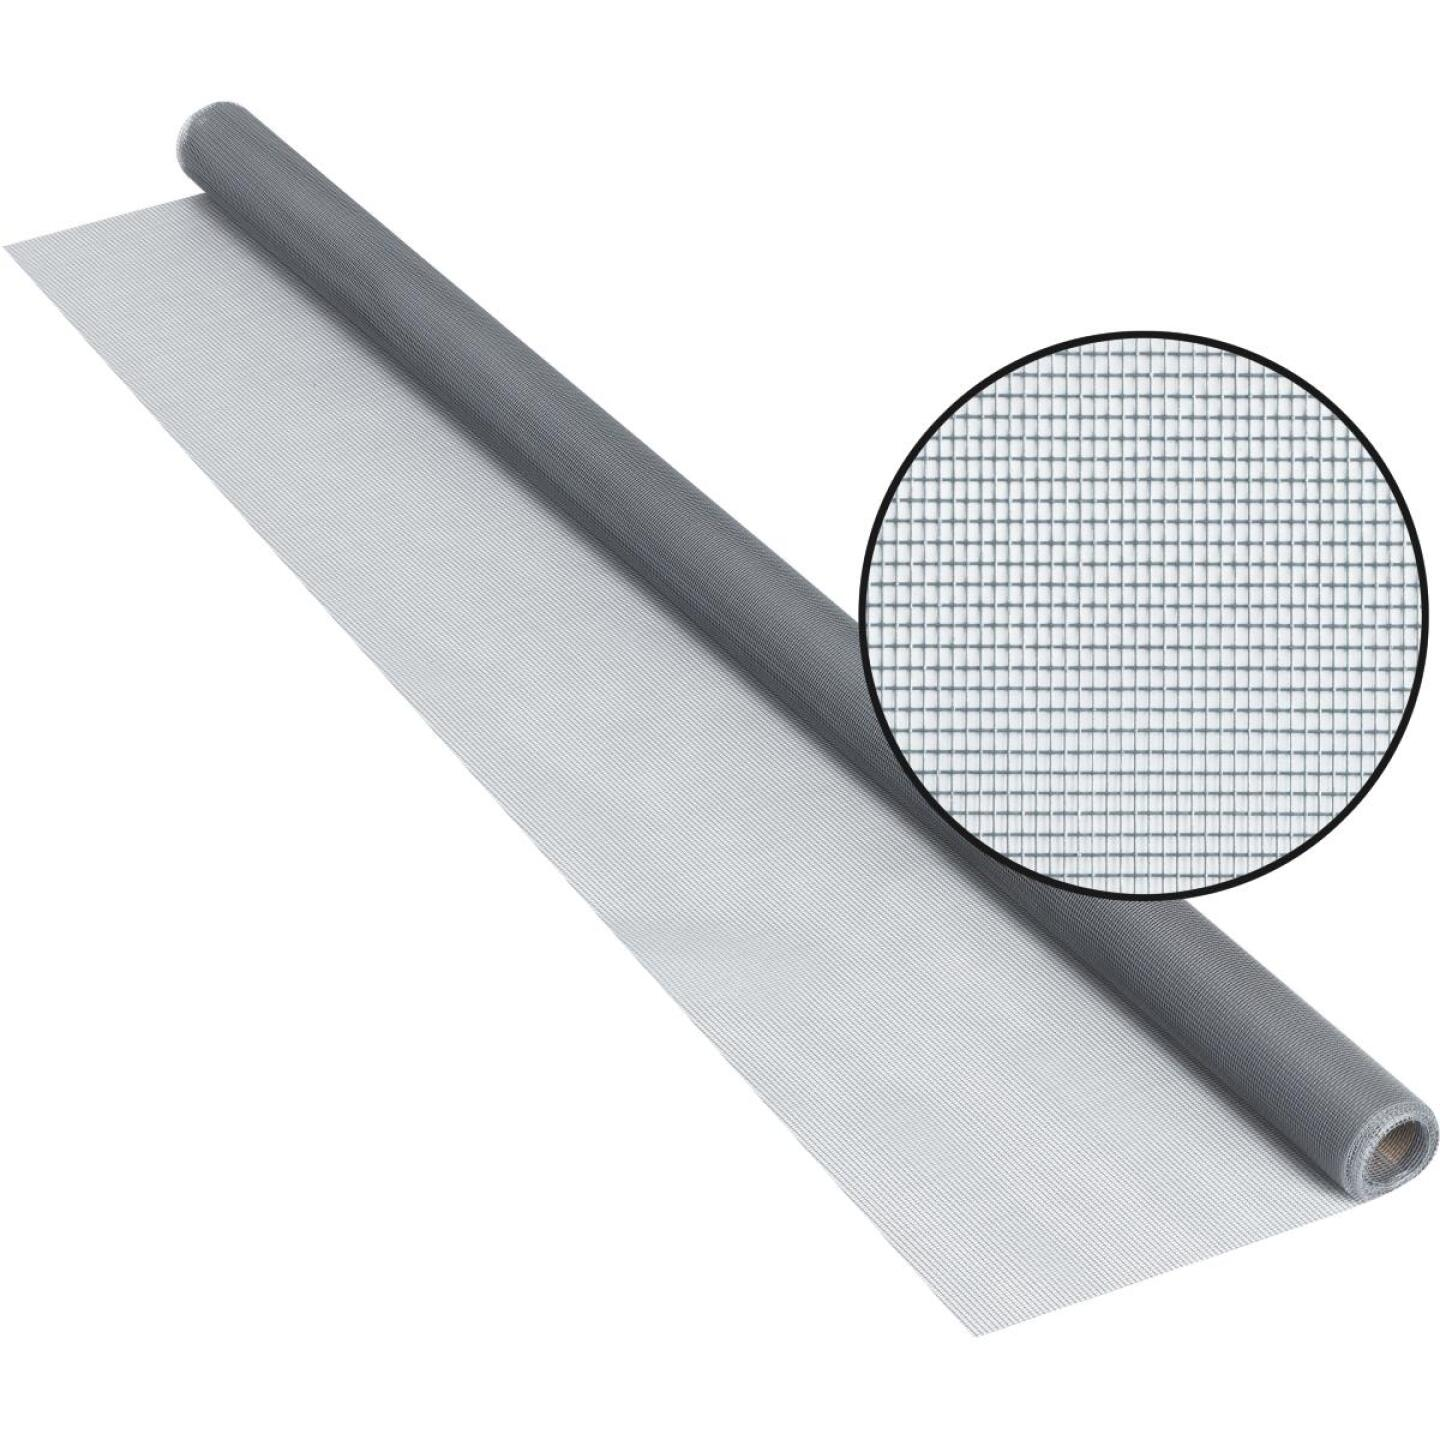 Phifer 48 In. x 84 In. Gray Fiberglass Screen Cloth Ready Rolls Image 1